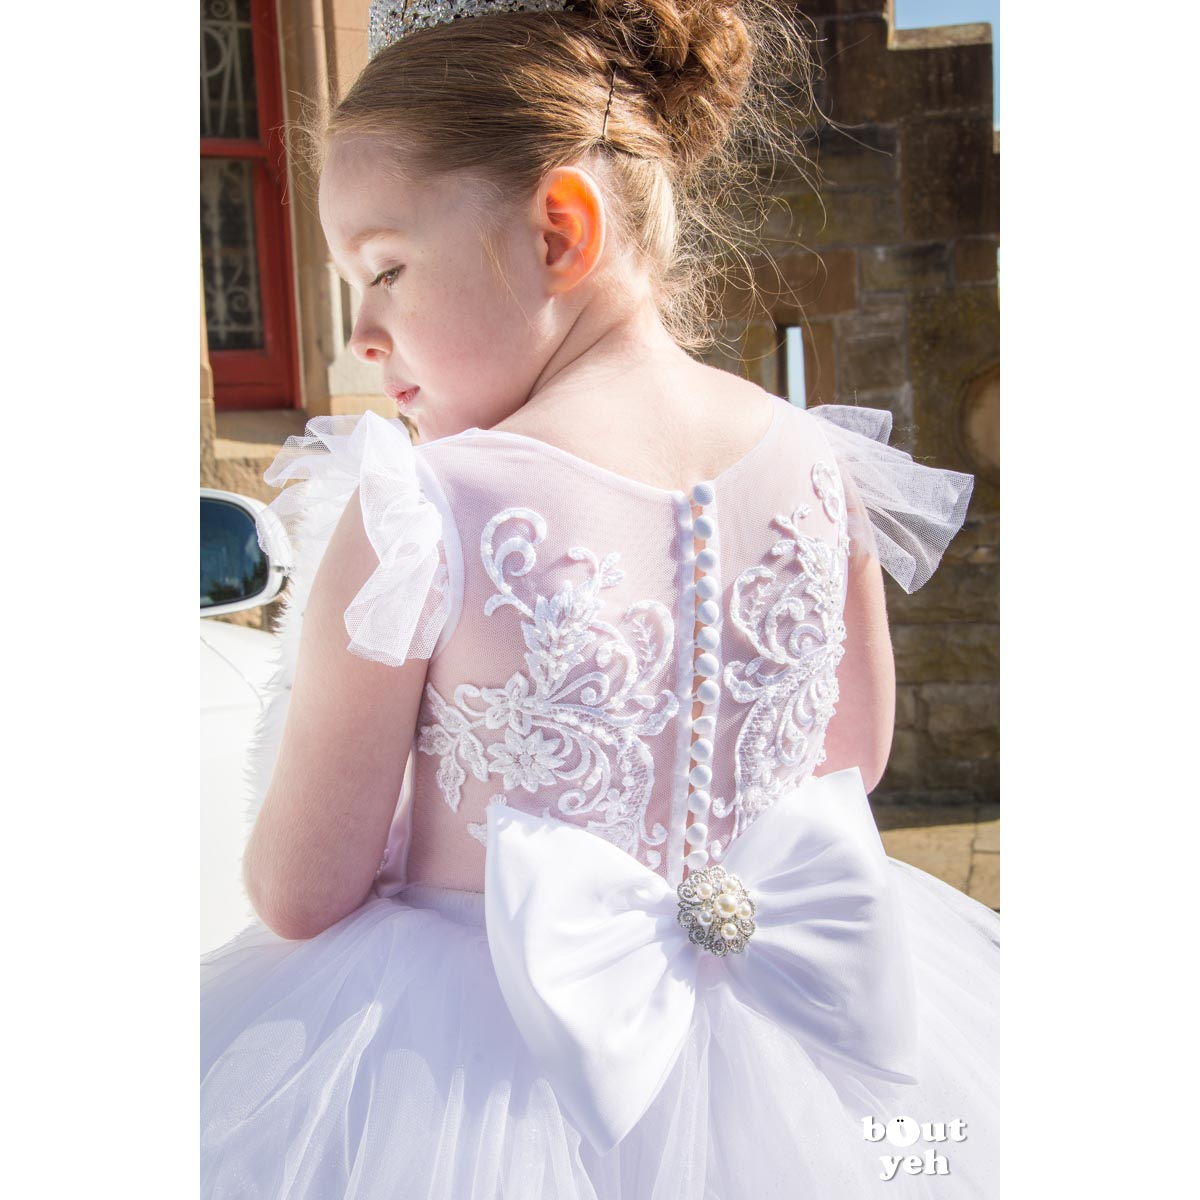 First Communion photography at Belfast Castle by Bout Yeh, Belfast, Northern Ireland - photo 2515